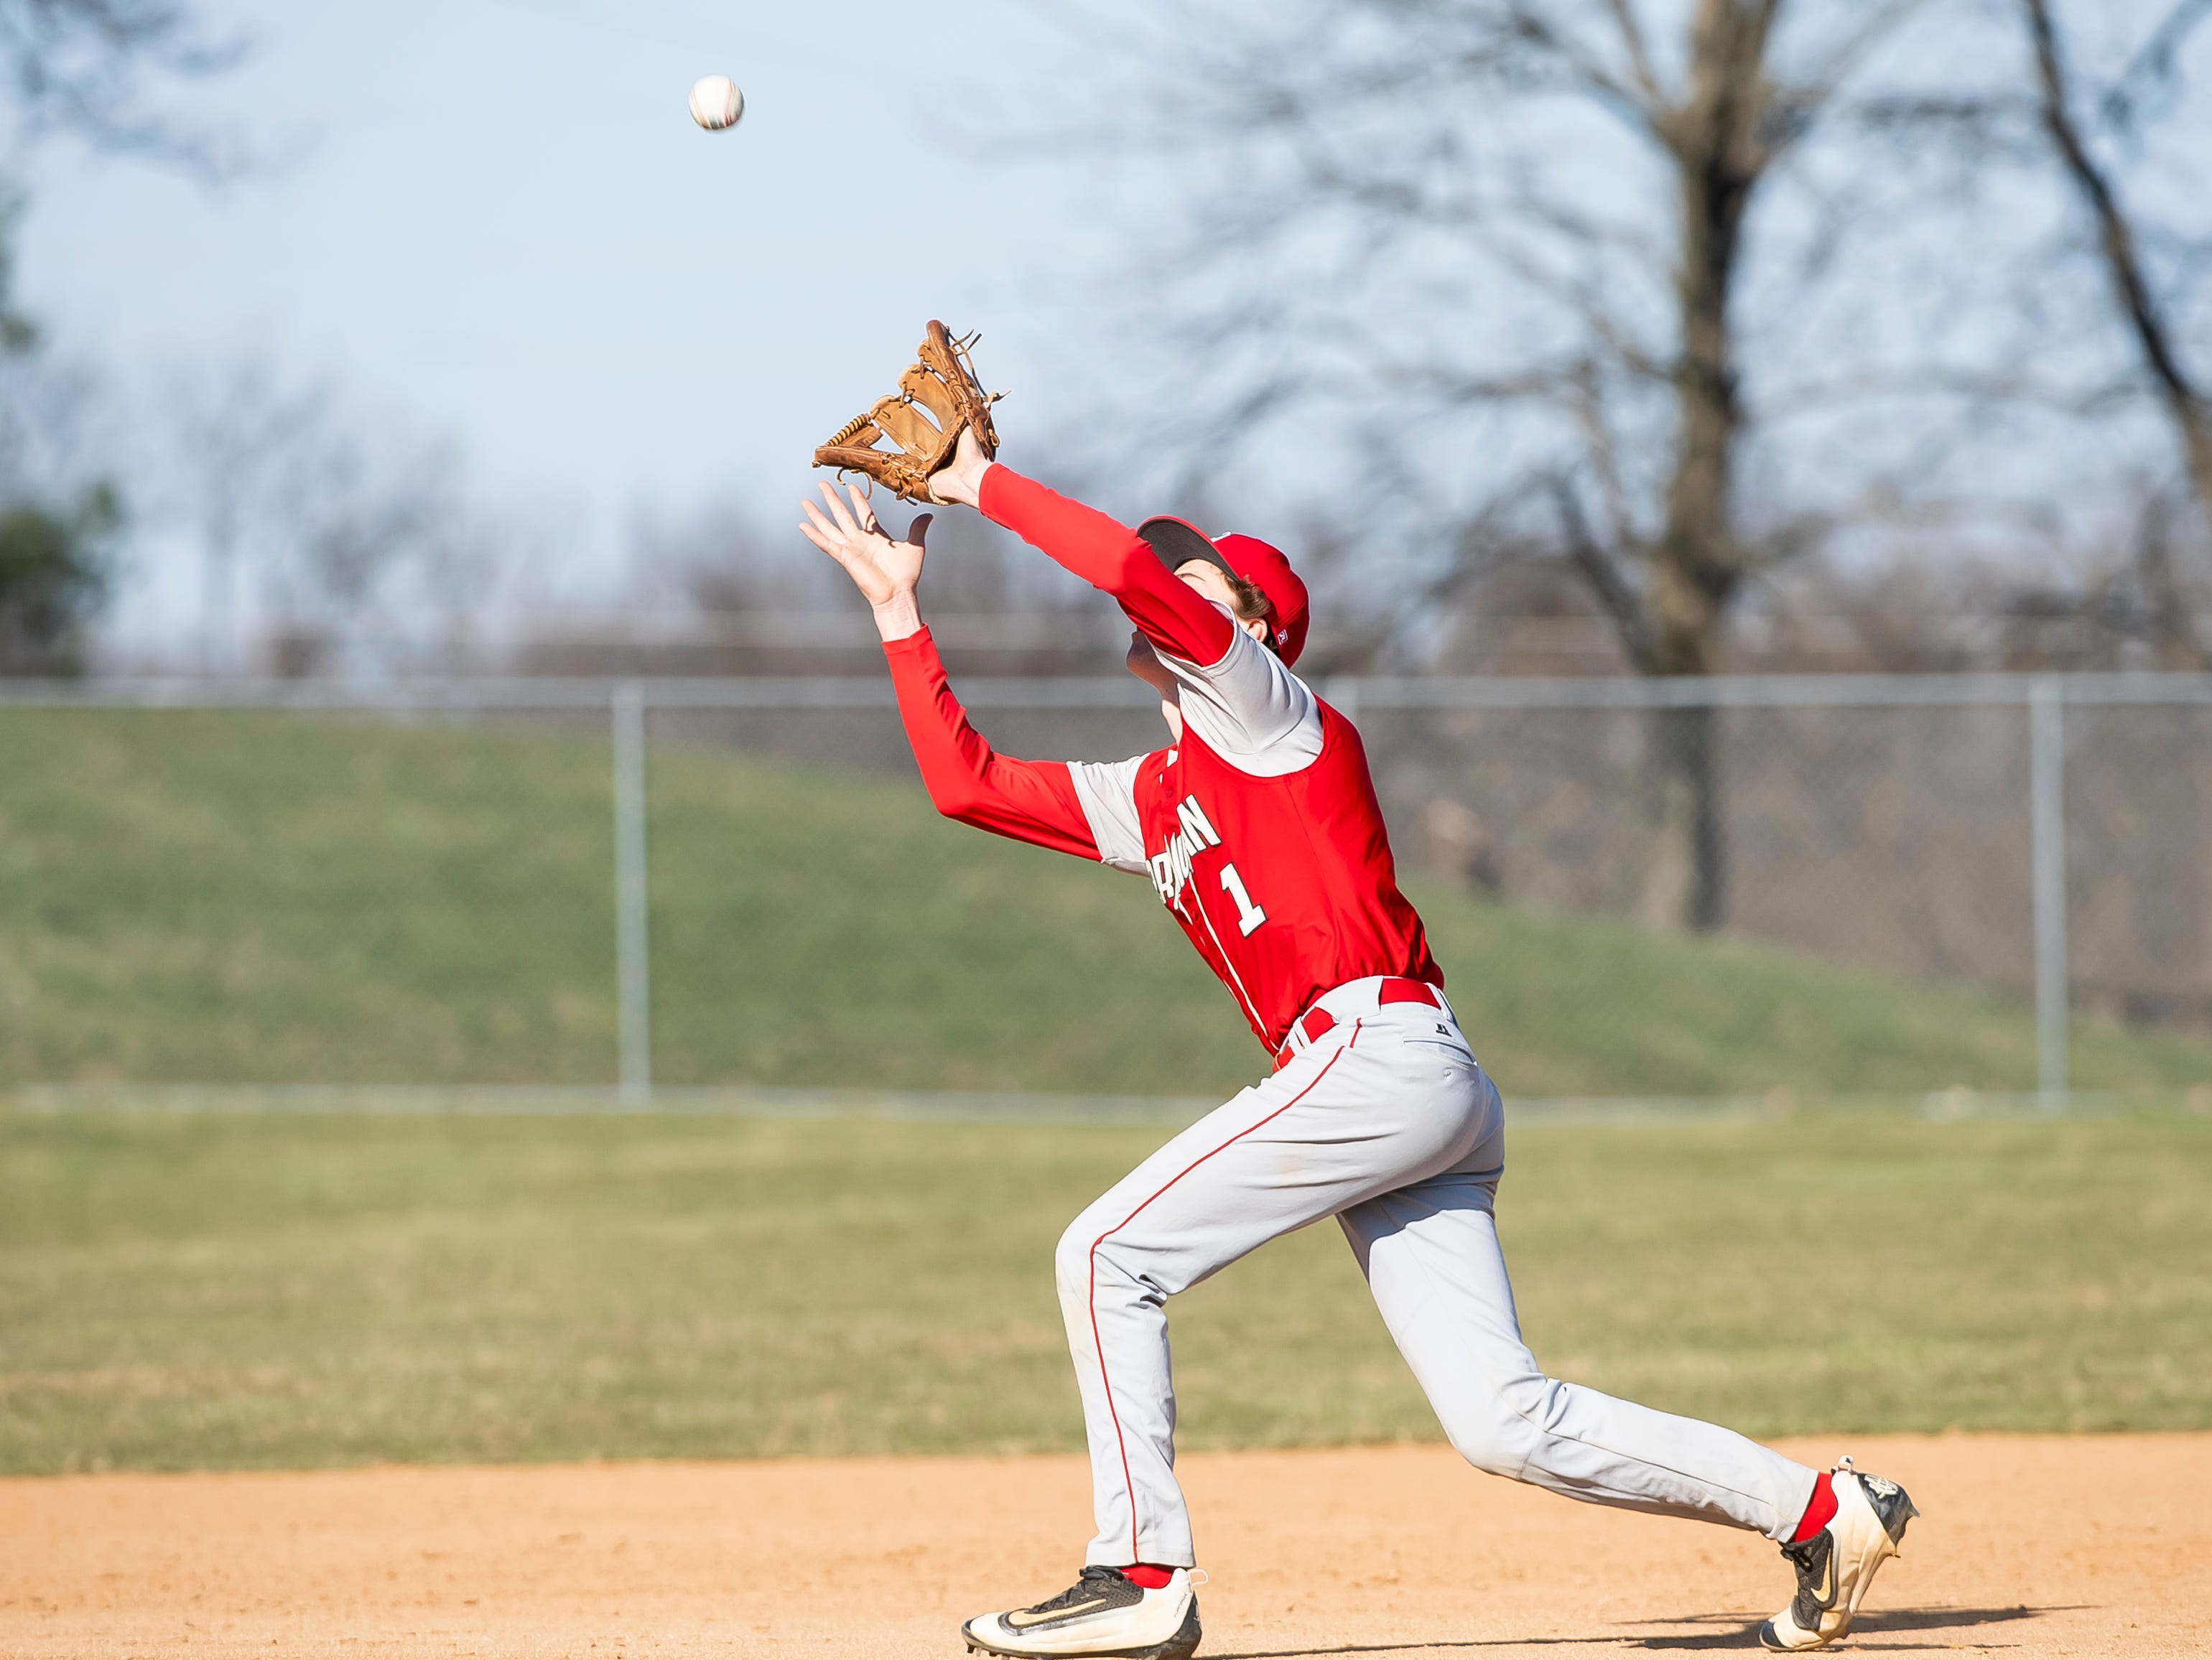 Bermudian Springs' Tucker Byers catches an infield fly during a YAIAA baseball game against West York on Wednesday, April 3, 2019. The Eagles fell 14-11.